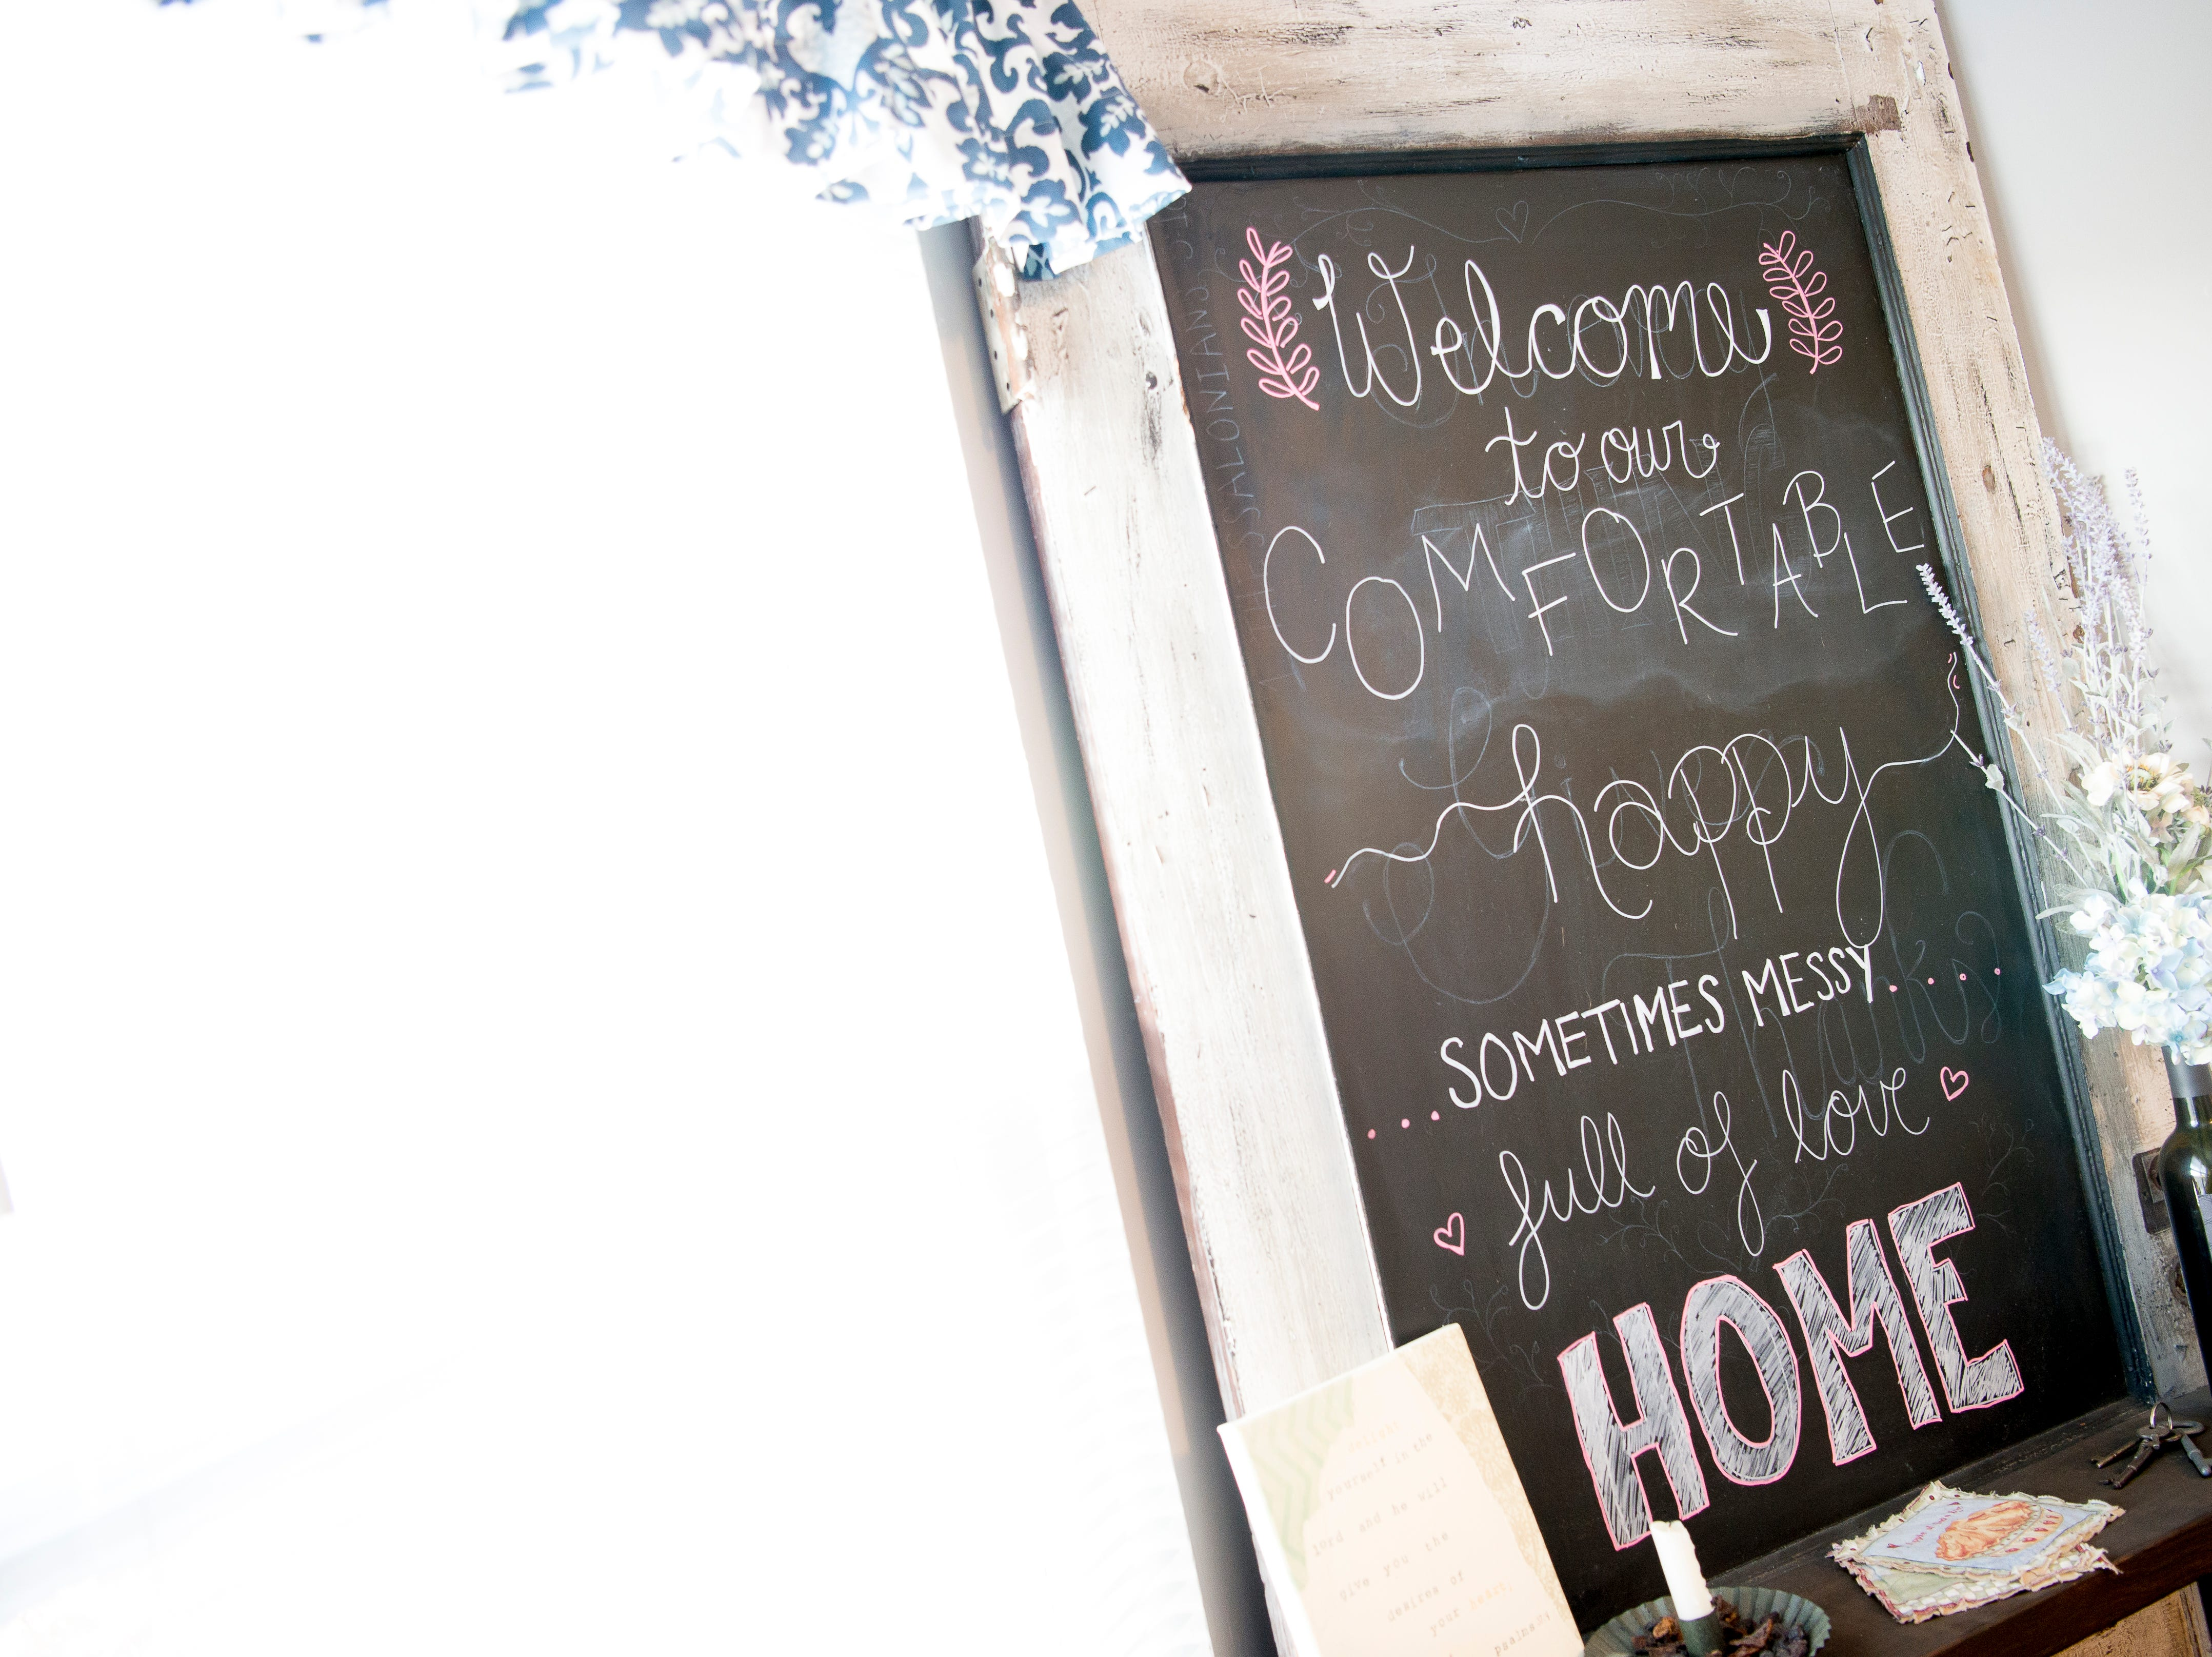 """A sign reading 'Welcome to our comfortable happy sometimes messy full of love home,"""" in the living room of Miller and Gurney's home off McKamey Road west of Knoxville, Tennessee on Wednesday, April 3, 2019. After months of house searching, the couple decided to move into their current home last December after making some small compromises like being further away from downtown."""